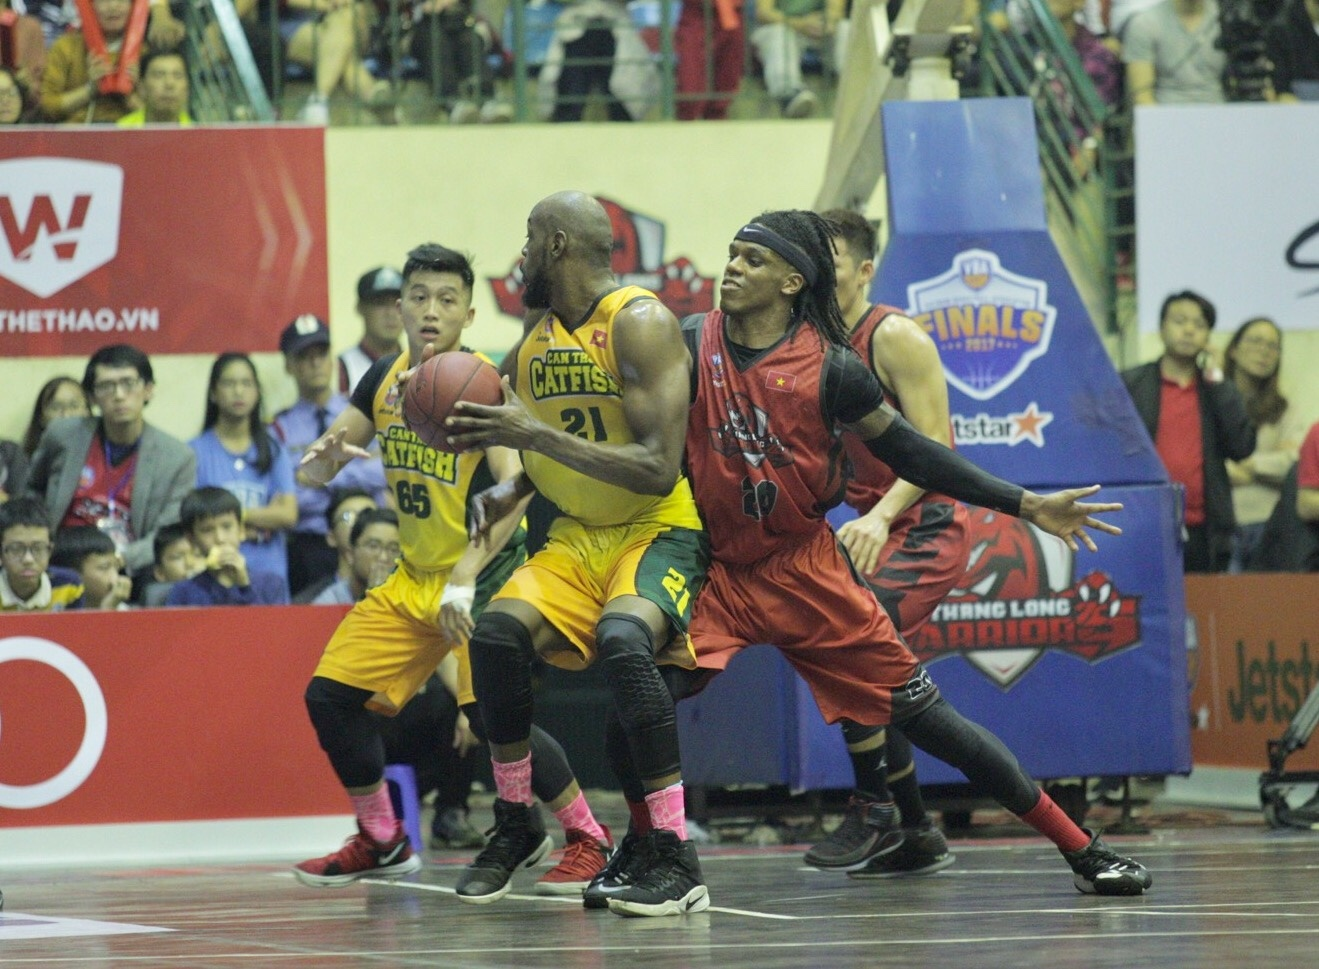 Thanglong Warriors vs Cantho Catfish anh 25